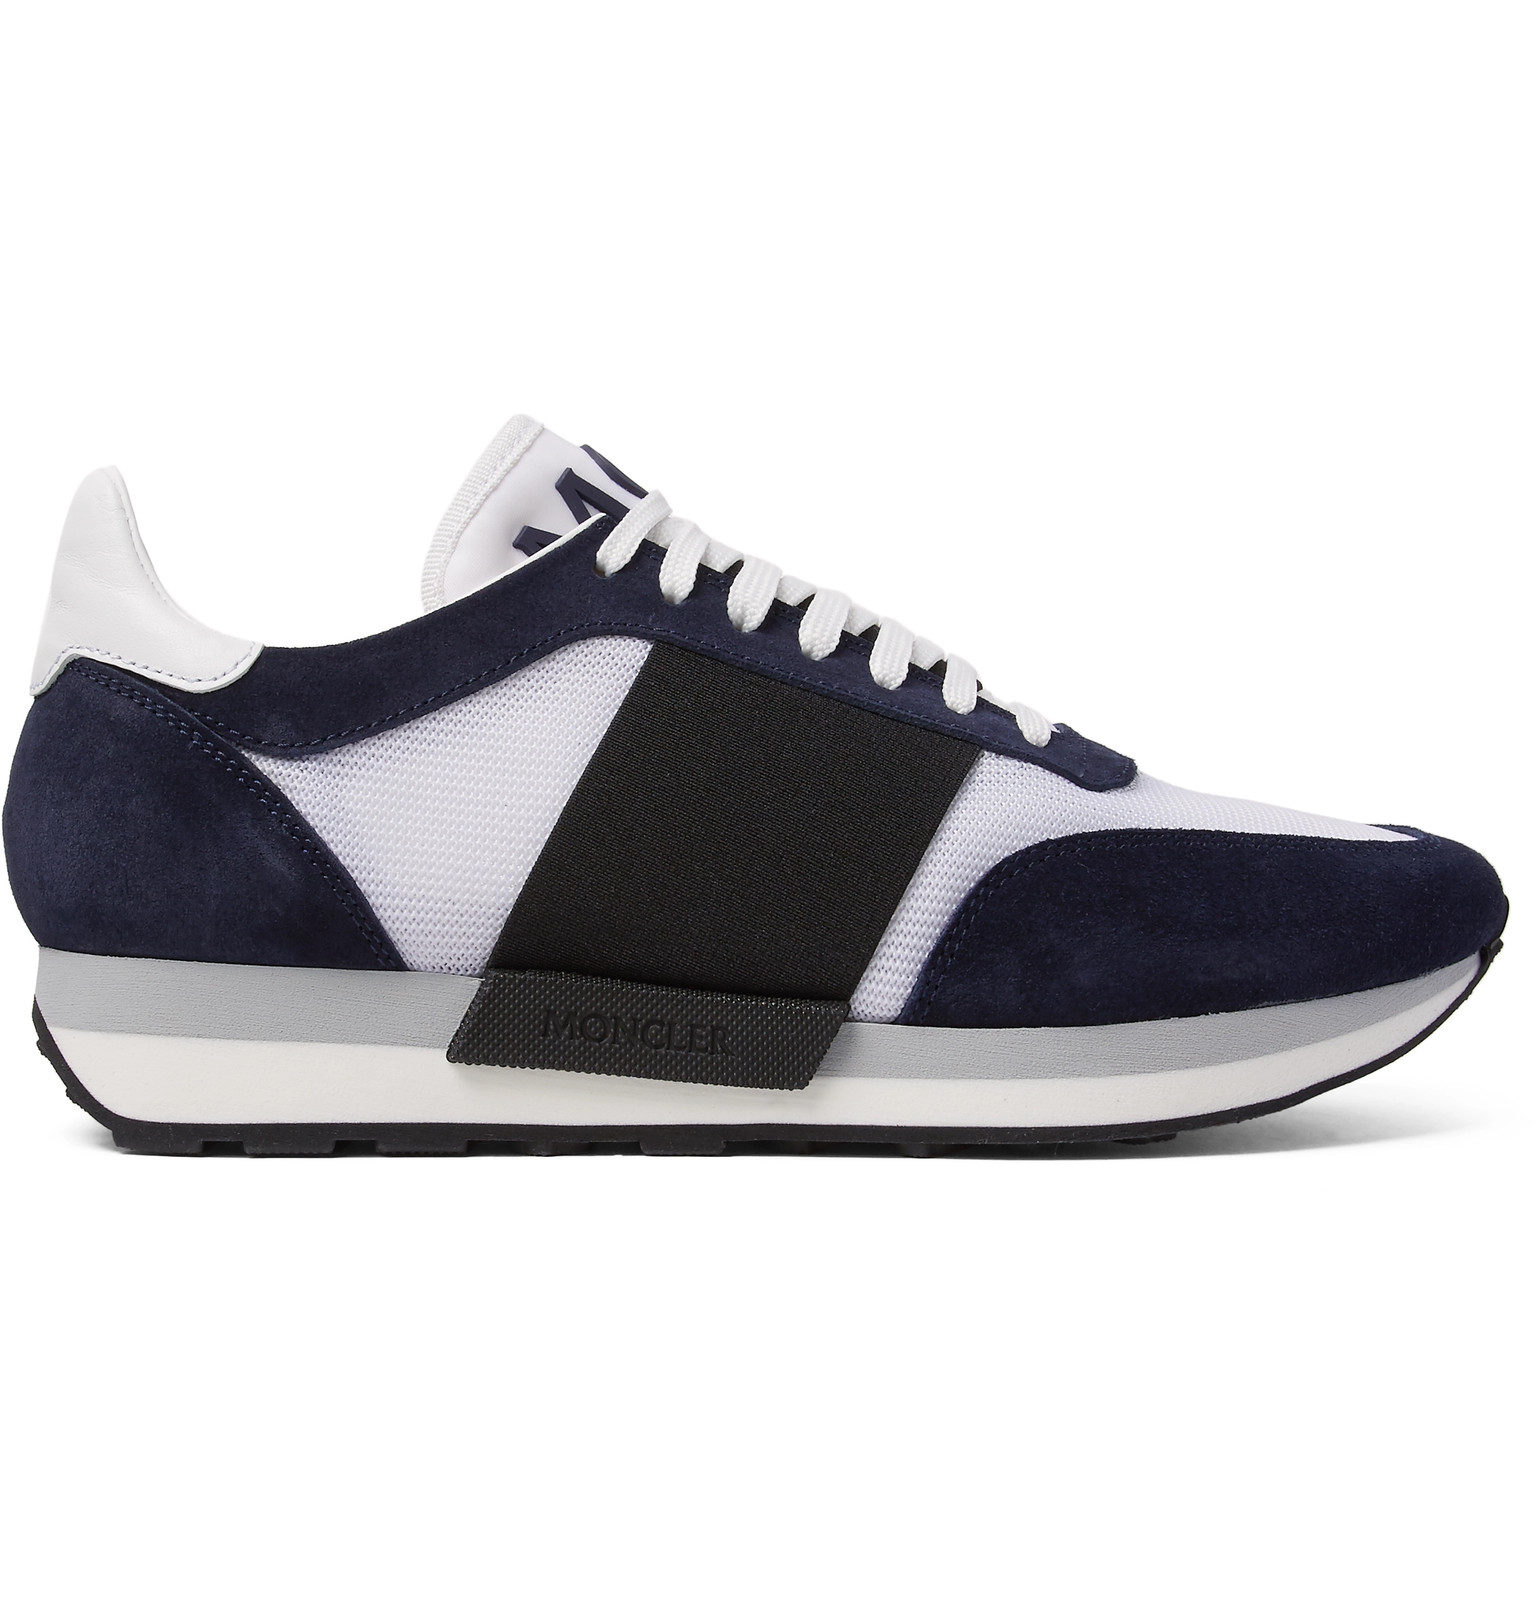 a70c4e970 Moncler - Horace Suede and Mesh Sneakers